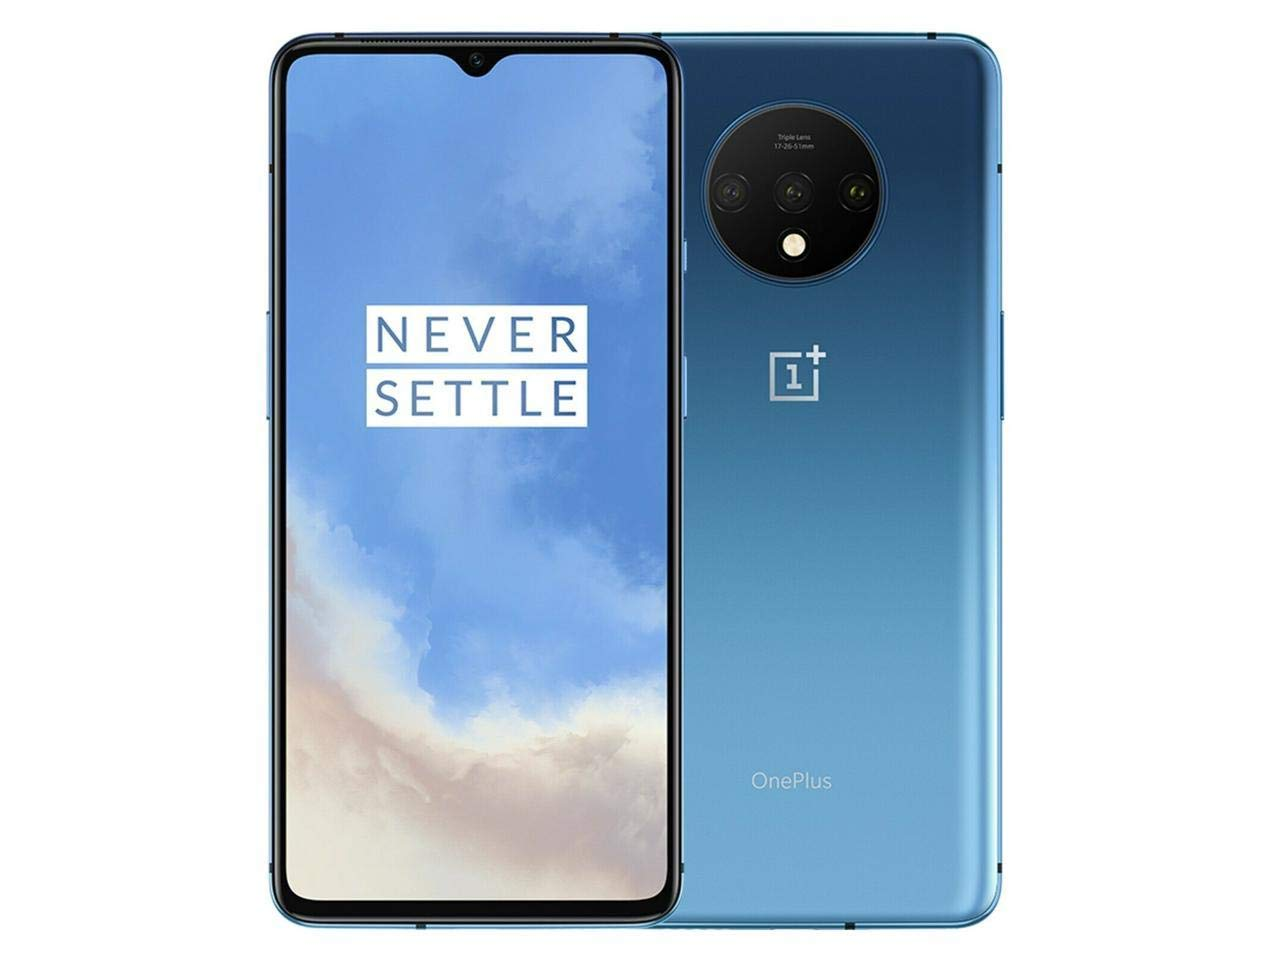 A blue OnePlus 7T phone.